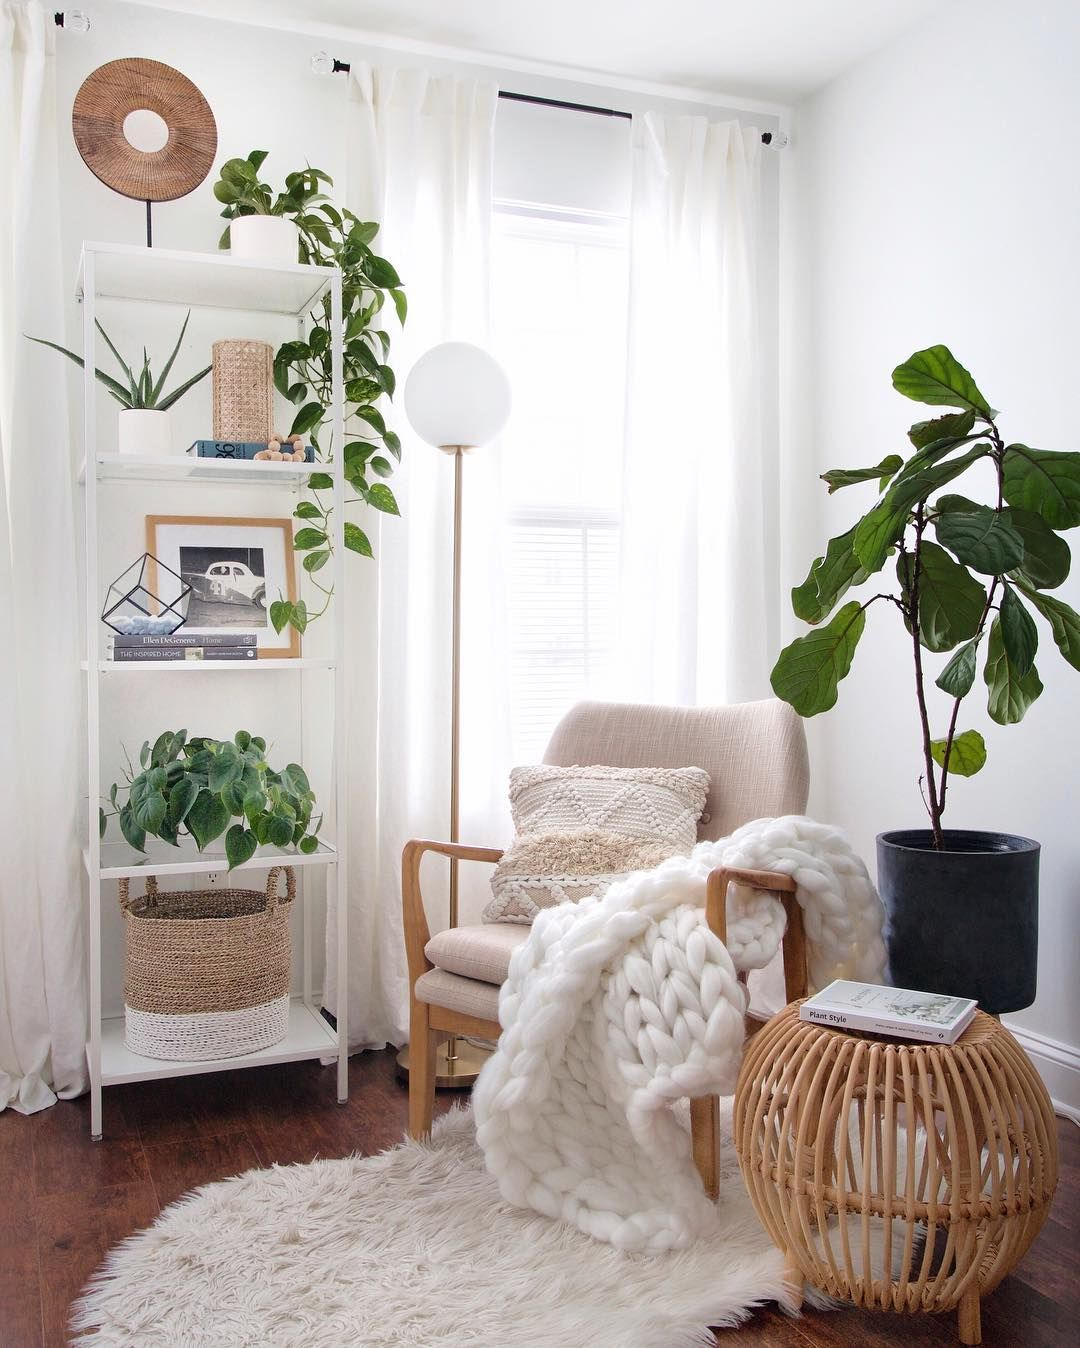 Kim Christian On Instagram It S A Need To Be Cozy Kind Of Day Give Me All The Layers Lots And Lots Living Room Corner Home Decor Bedroom Apartment Decor